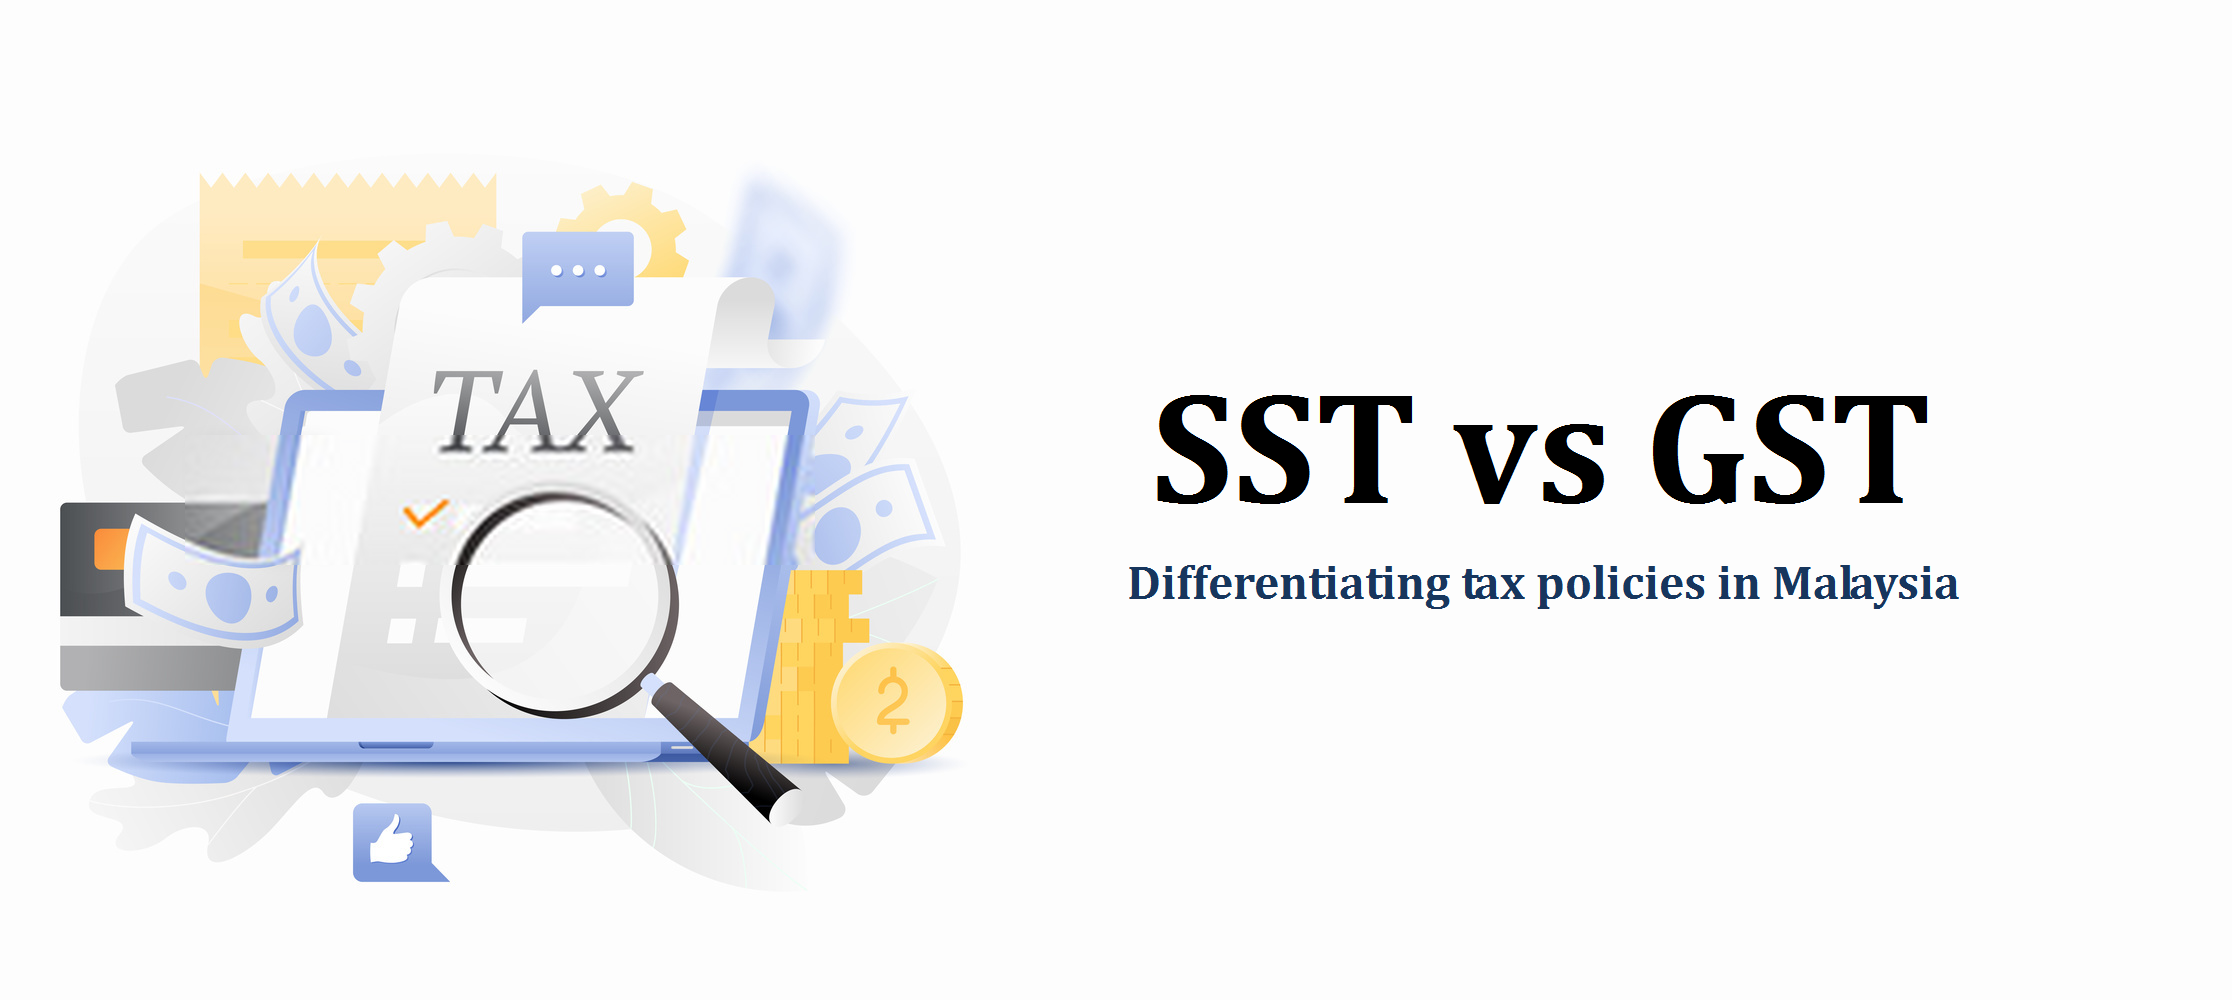 SST VS GST- Differentiating tax policies in Malaysia